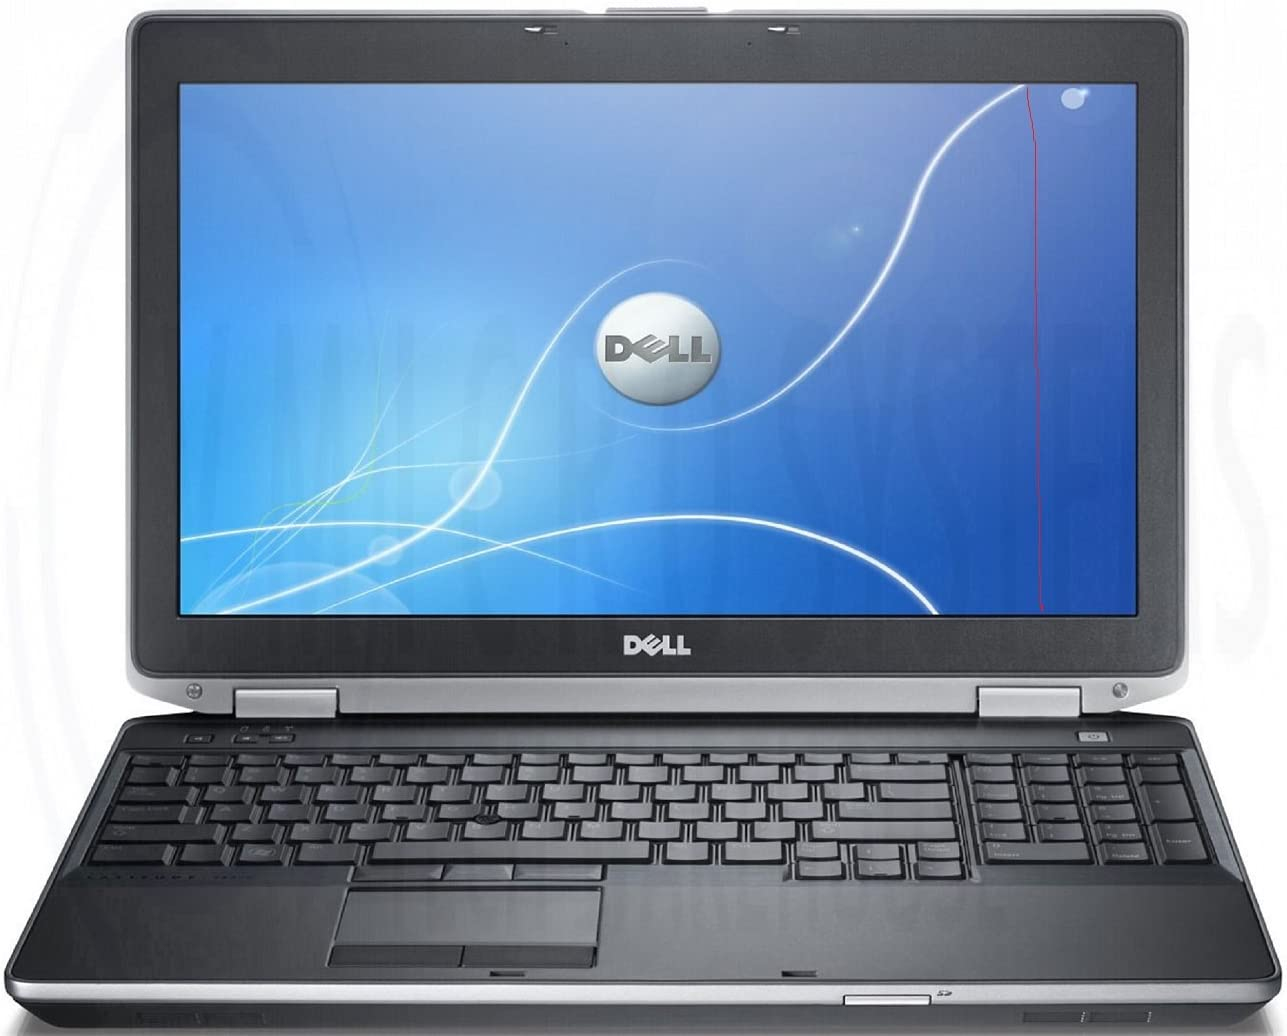 Dell Latitude E6520 15.6'' Business Laptop Intel Core i5 Vpro- 2.60 Ghz 2.60 Ghz 4gb of RAM /250gb HDD / Hdmi Port